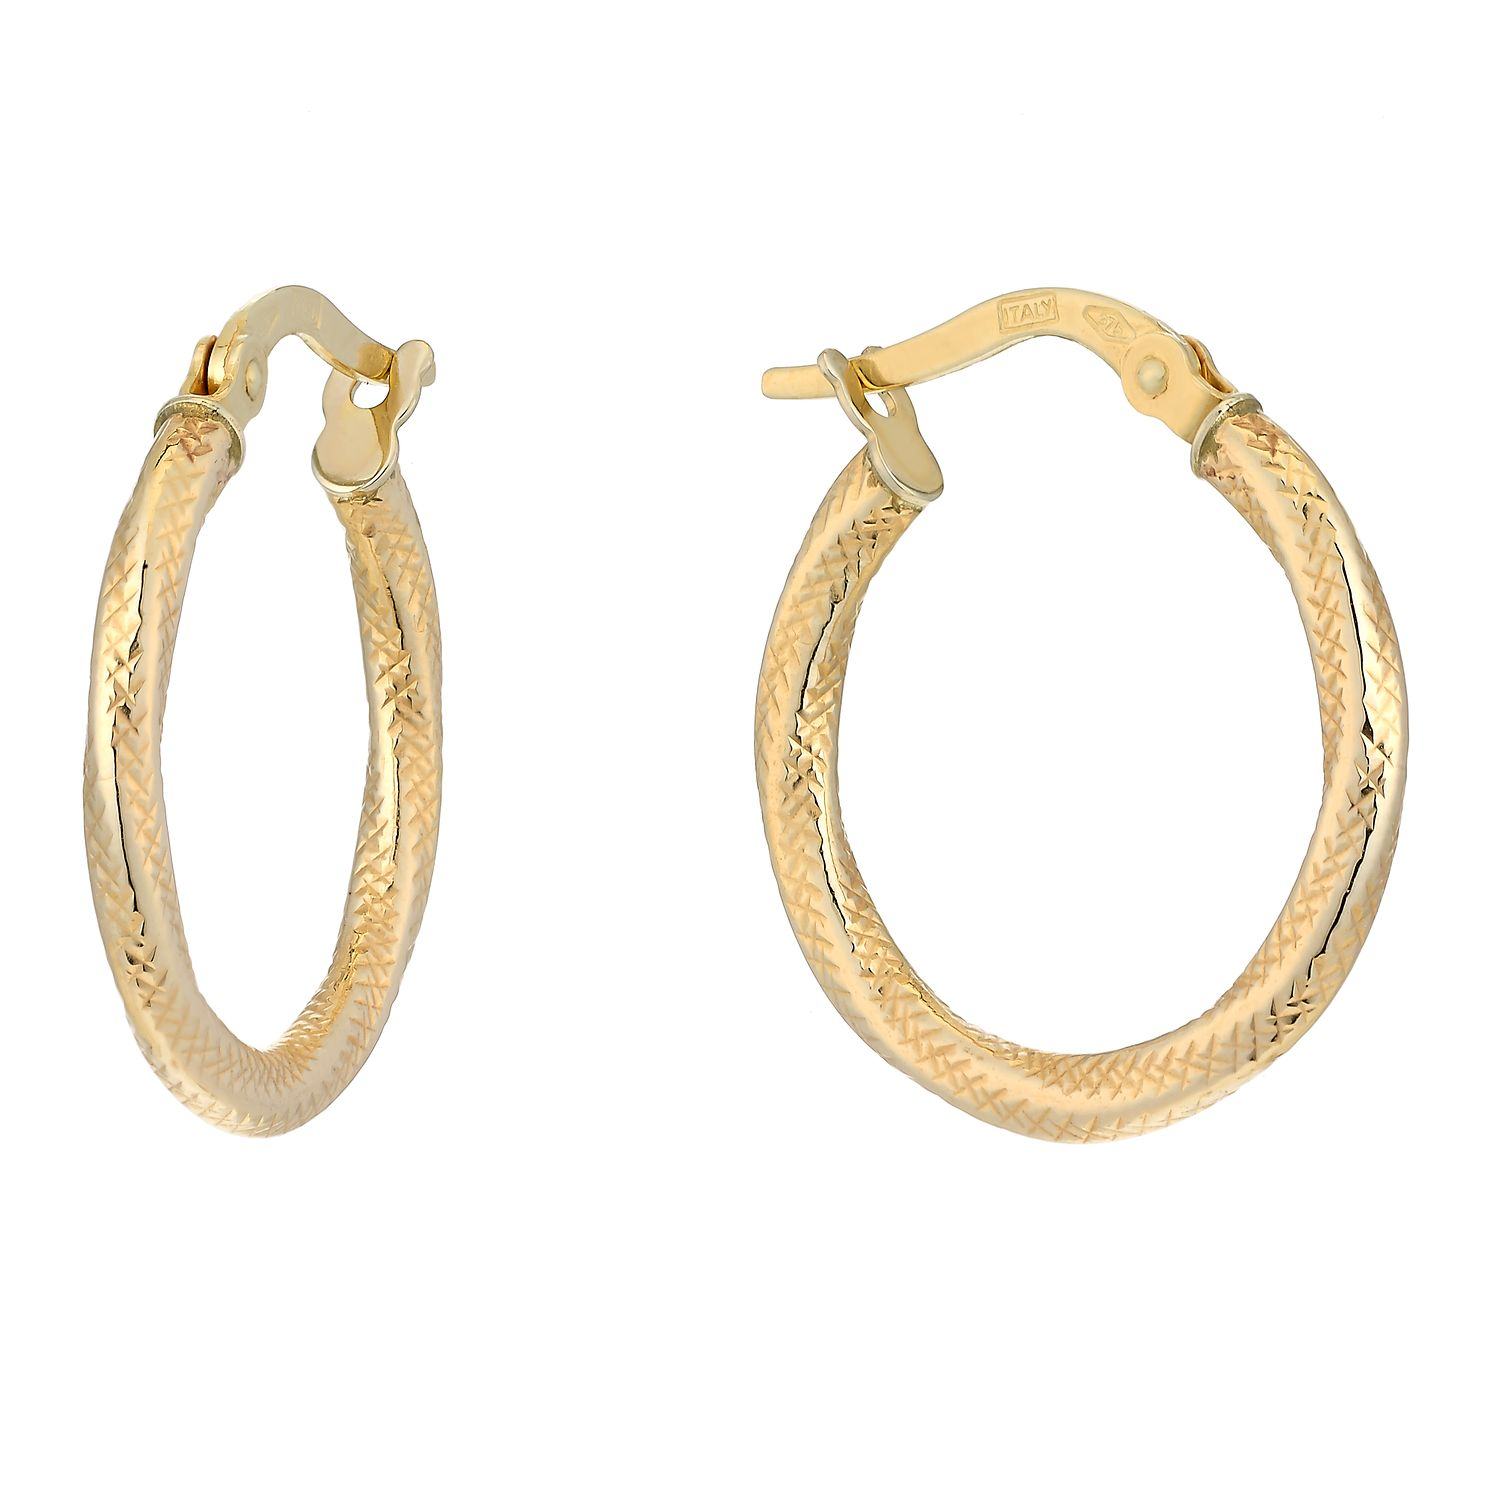 9ct Yellow Gold Fancy Groove 15mm Hoop Earrings - Product number 2338823